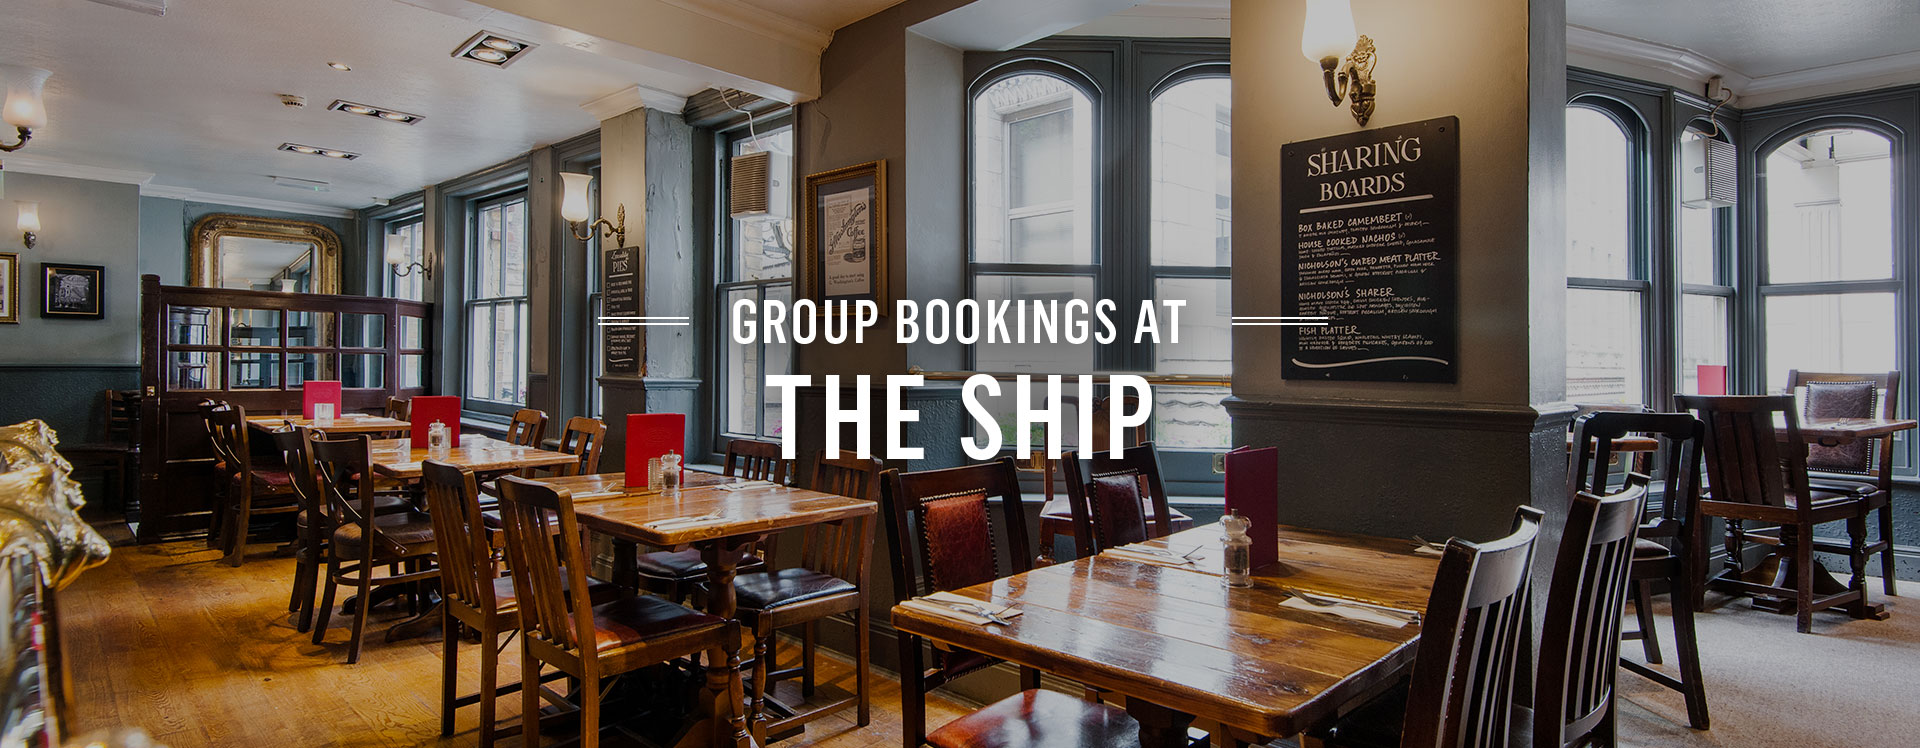 Group Bookings at The Ship